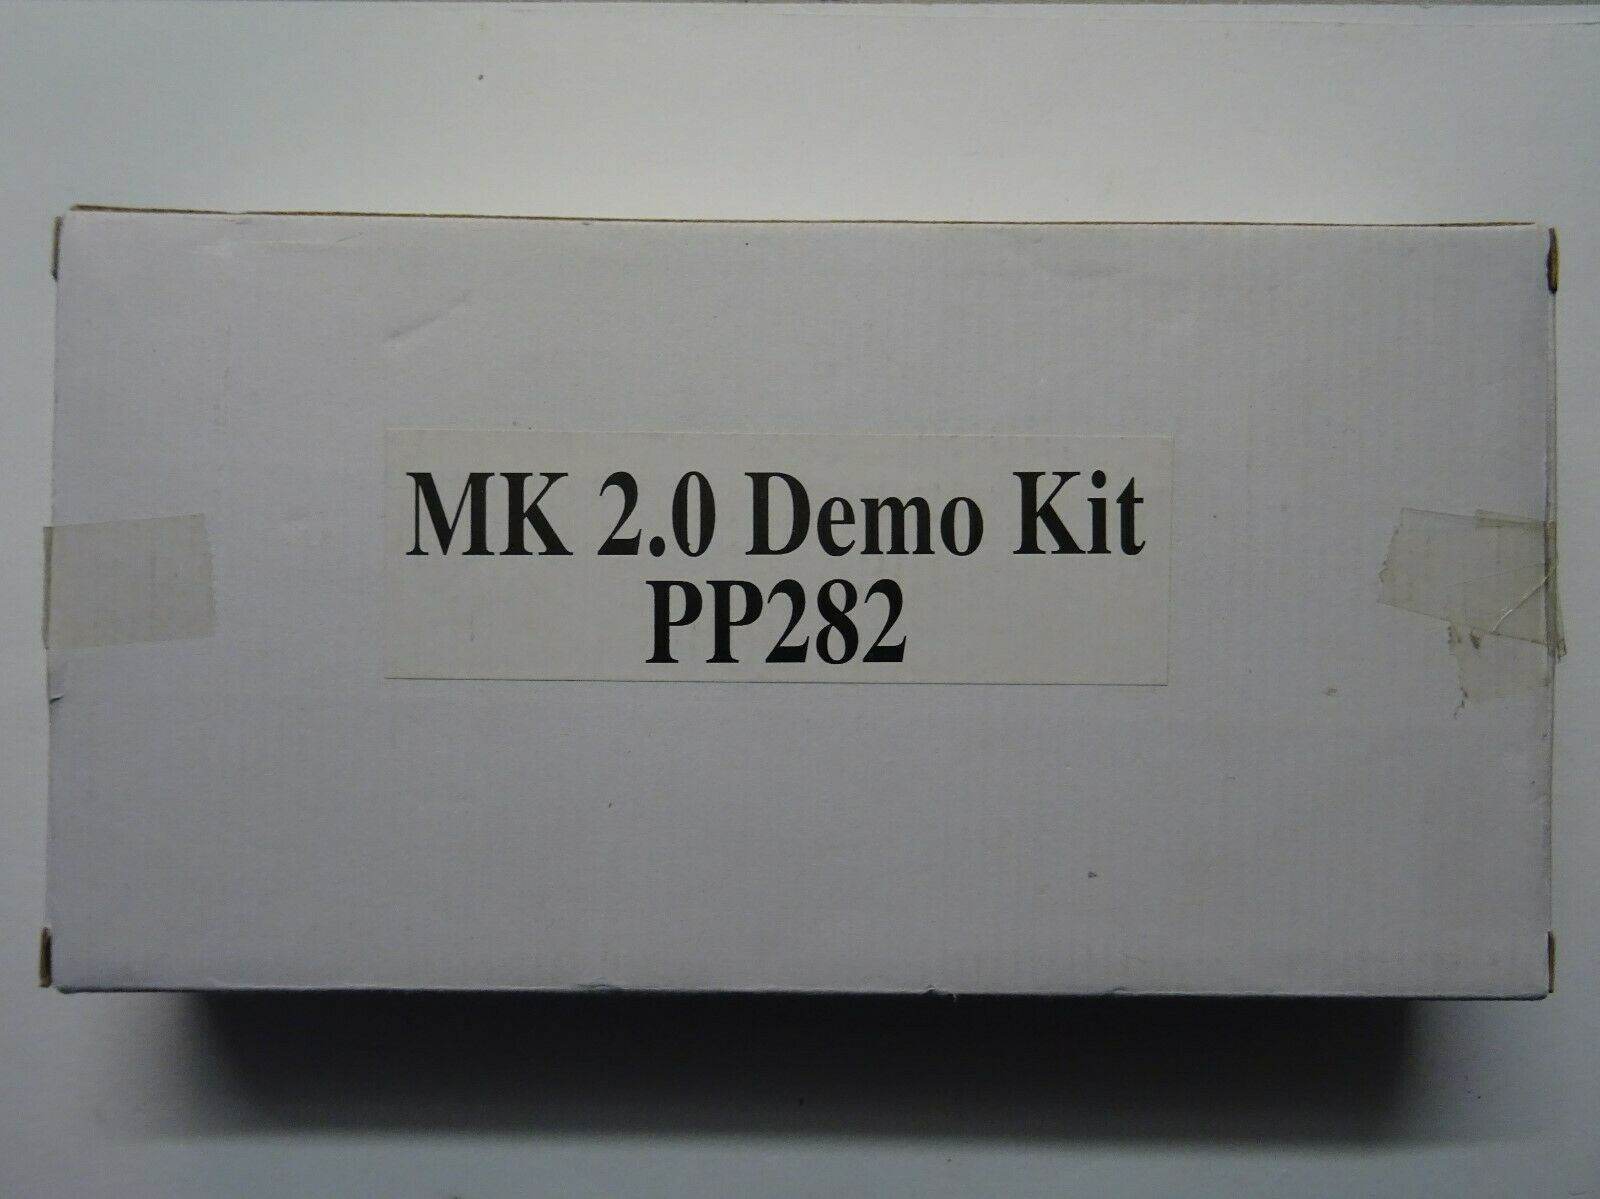 Mage Knight - MK 2.0 Demo Kit  PP282